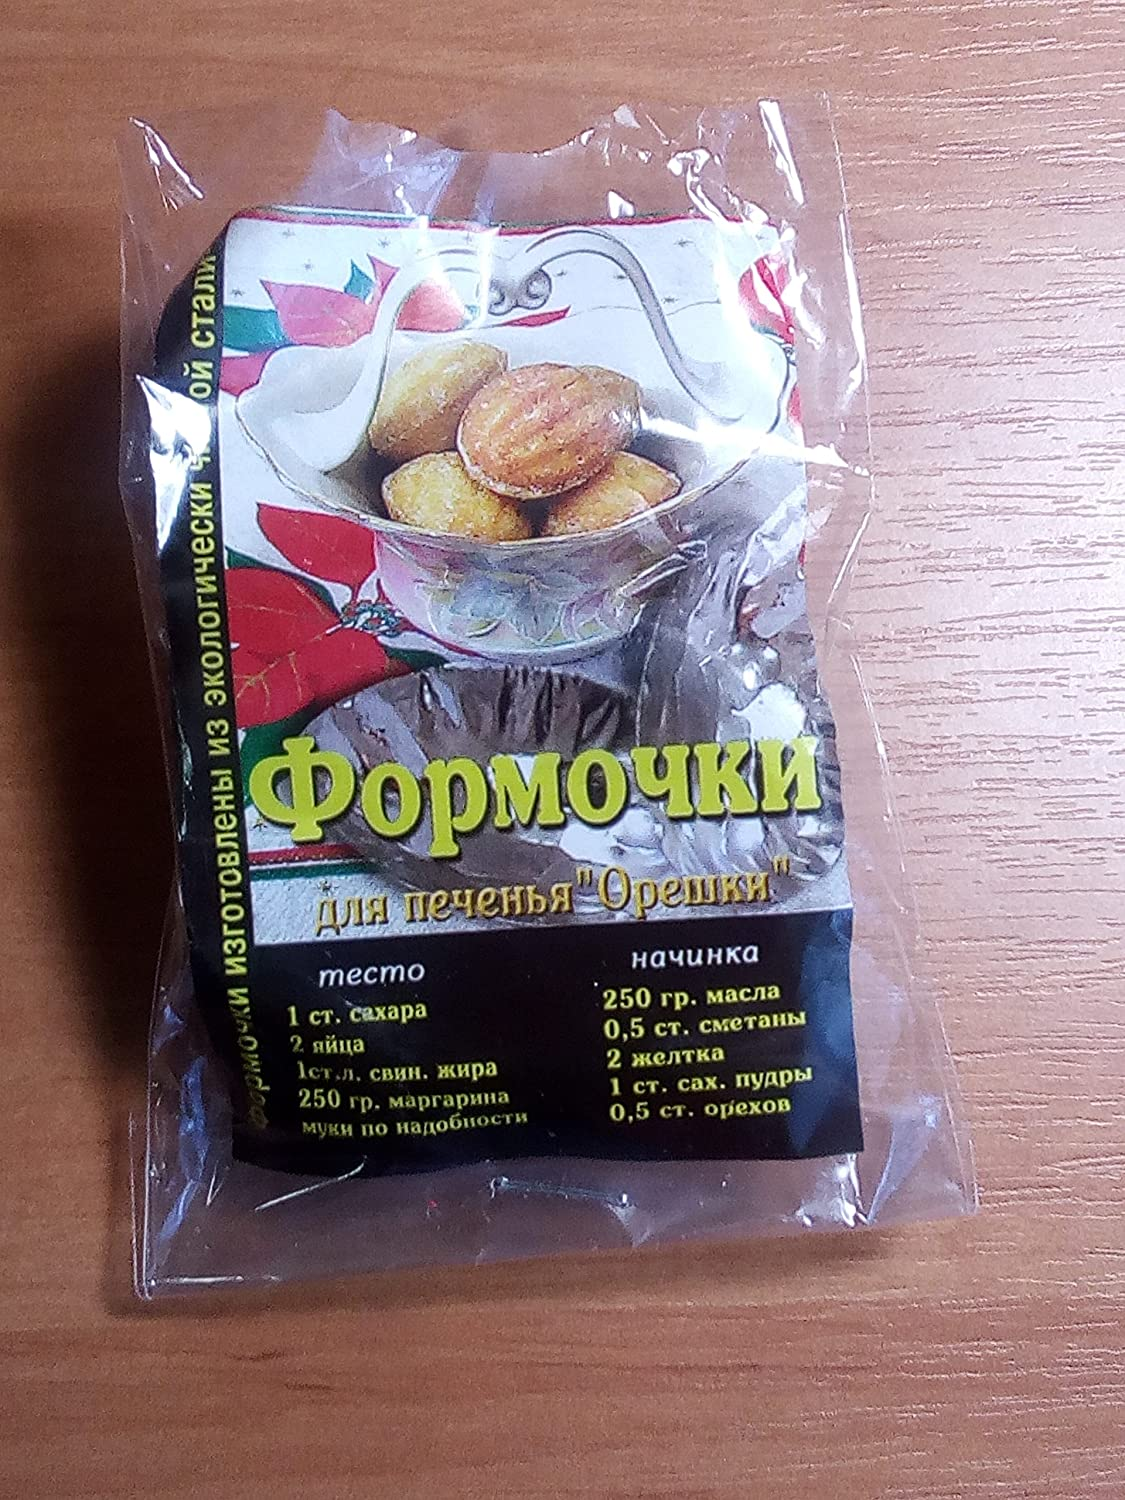 Metal Mold Form Nuts For Sweet Russian Nuts Oreshki 40pcs Pastry Cookie Nutlets